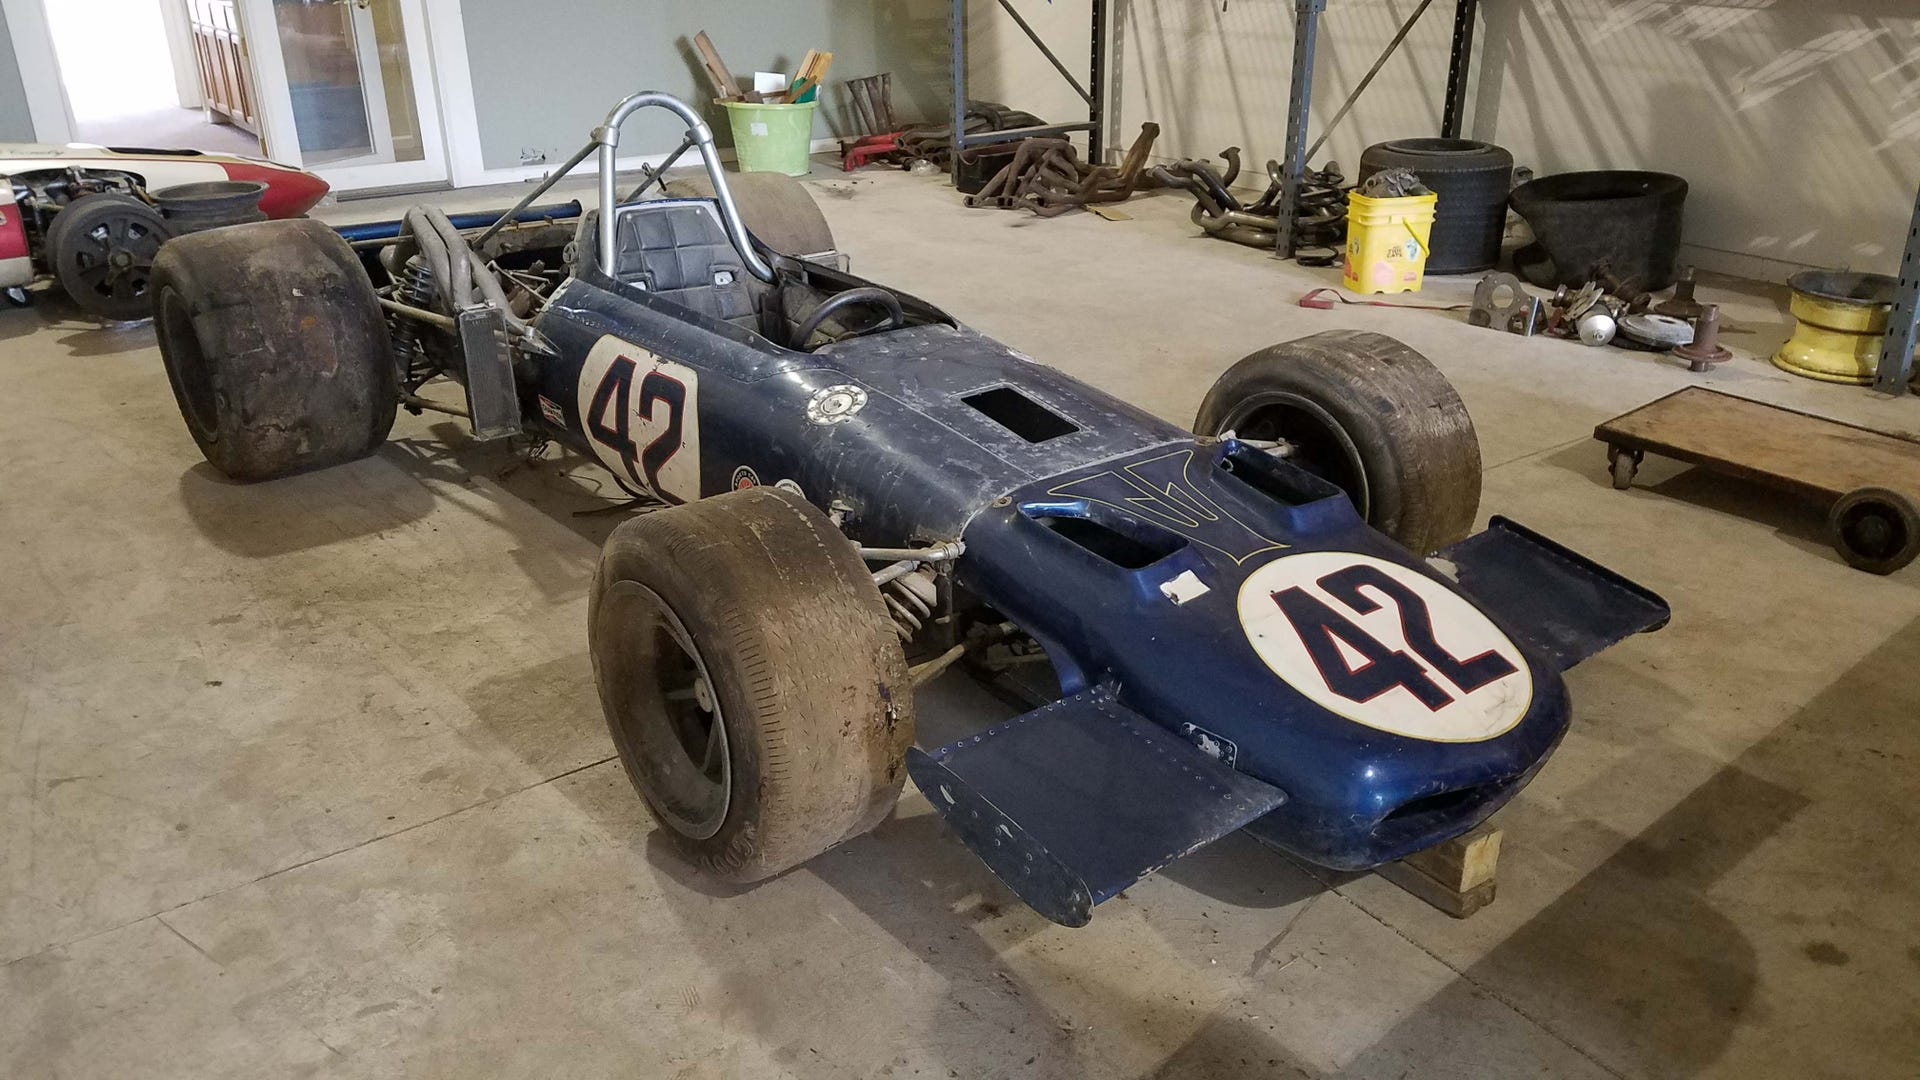 """Jack """"The Brighton Bandit"""" Conely's race cars being auctioned 67cd96b2-56dc-4464-9a7b-34b59d83b97e-conely_eagle"""